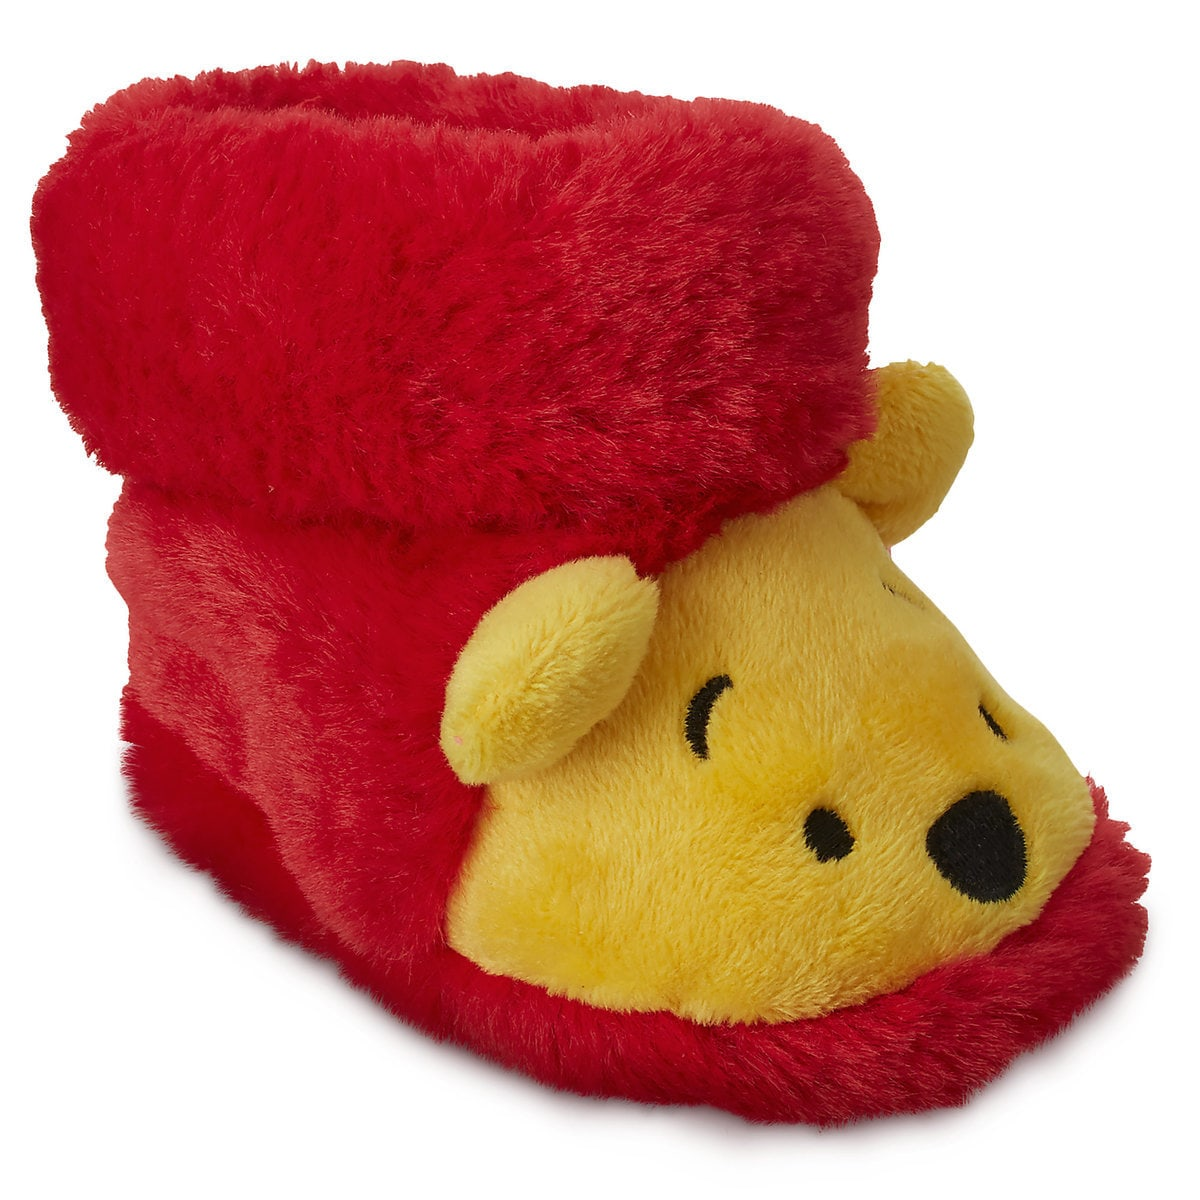 1dc556a1bdf Product Image of Winnie the Pooh Plush Slippers for Baby   1